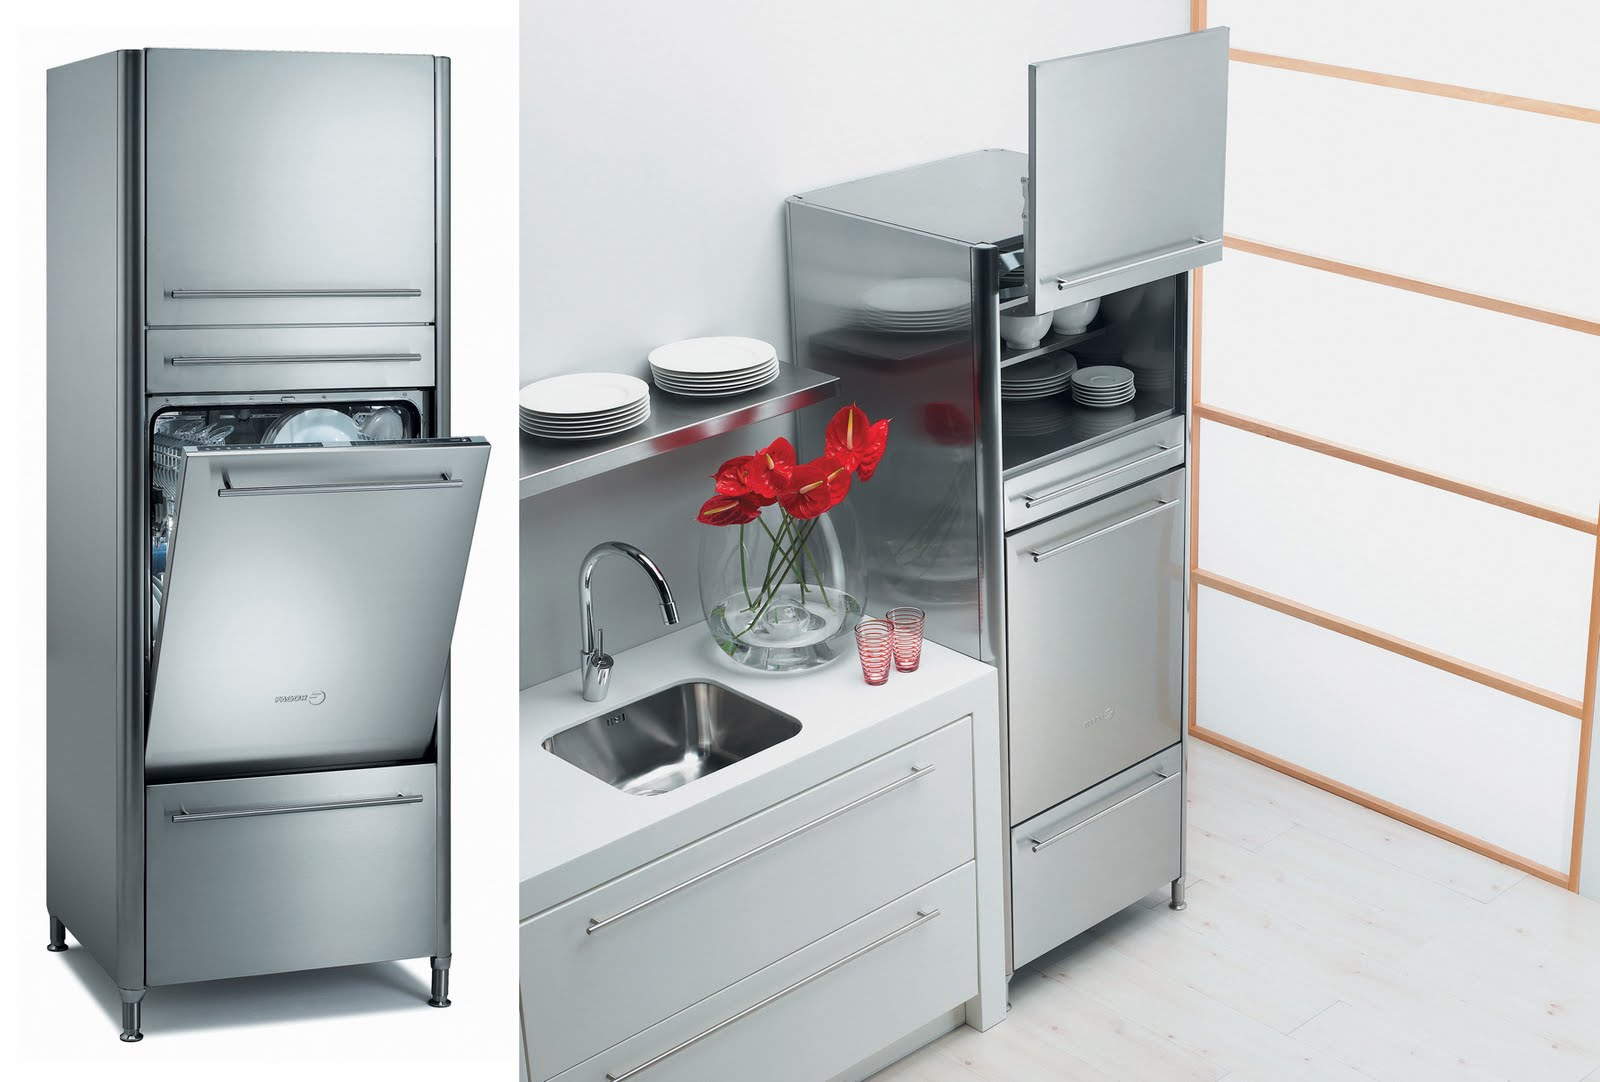 Top 10 Genius Small Kitchen Ideas That Will Change Your